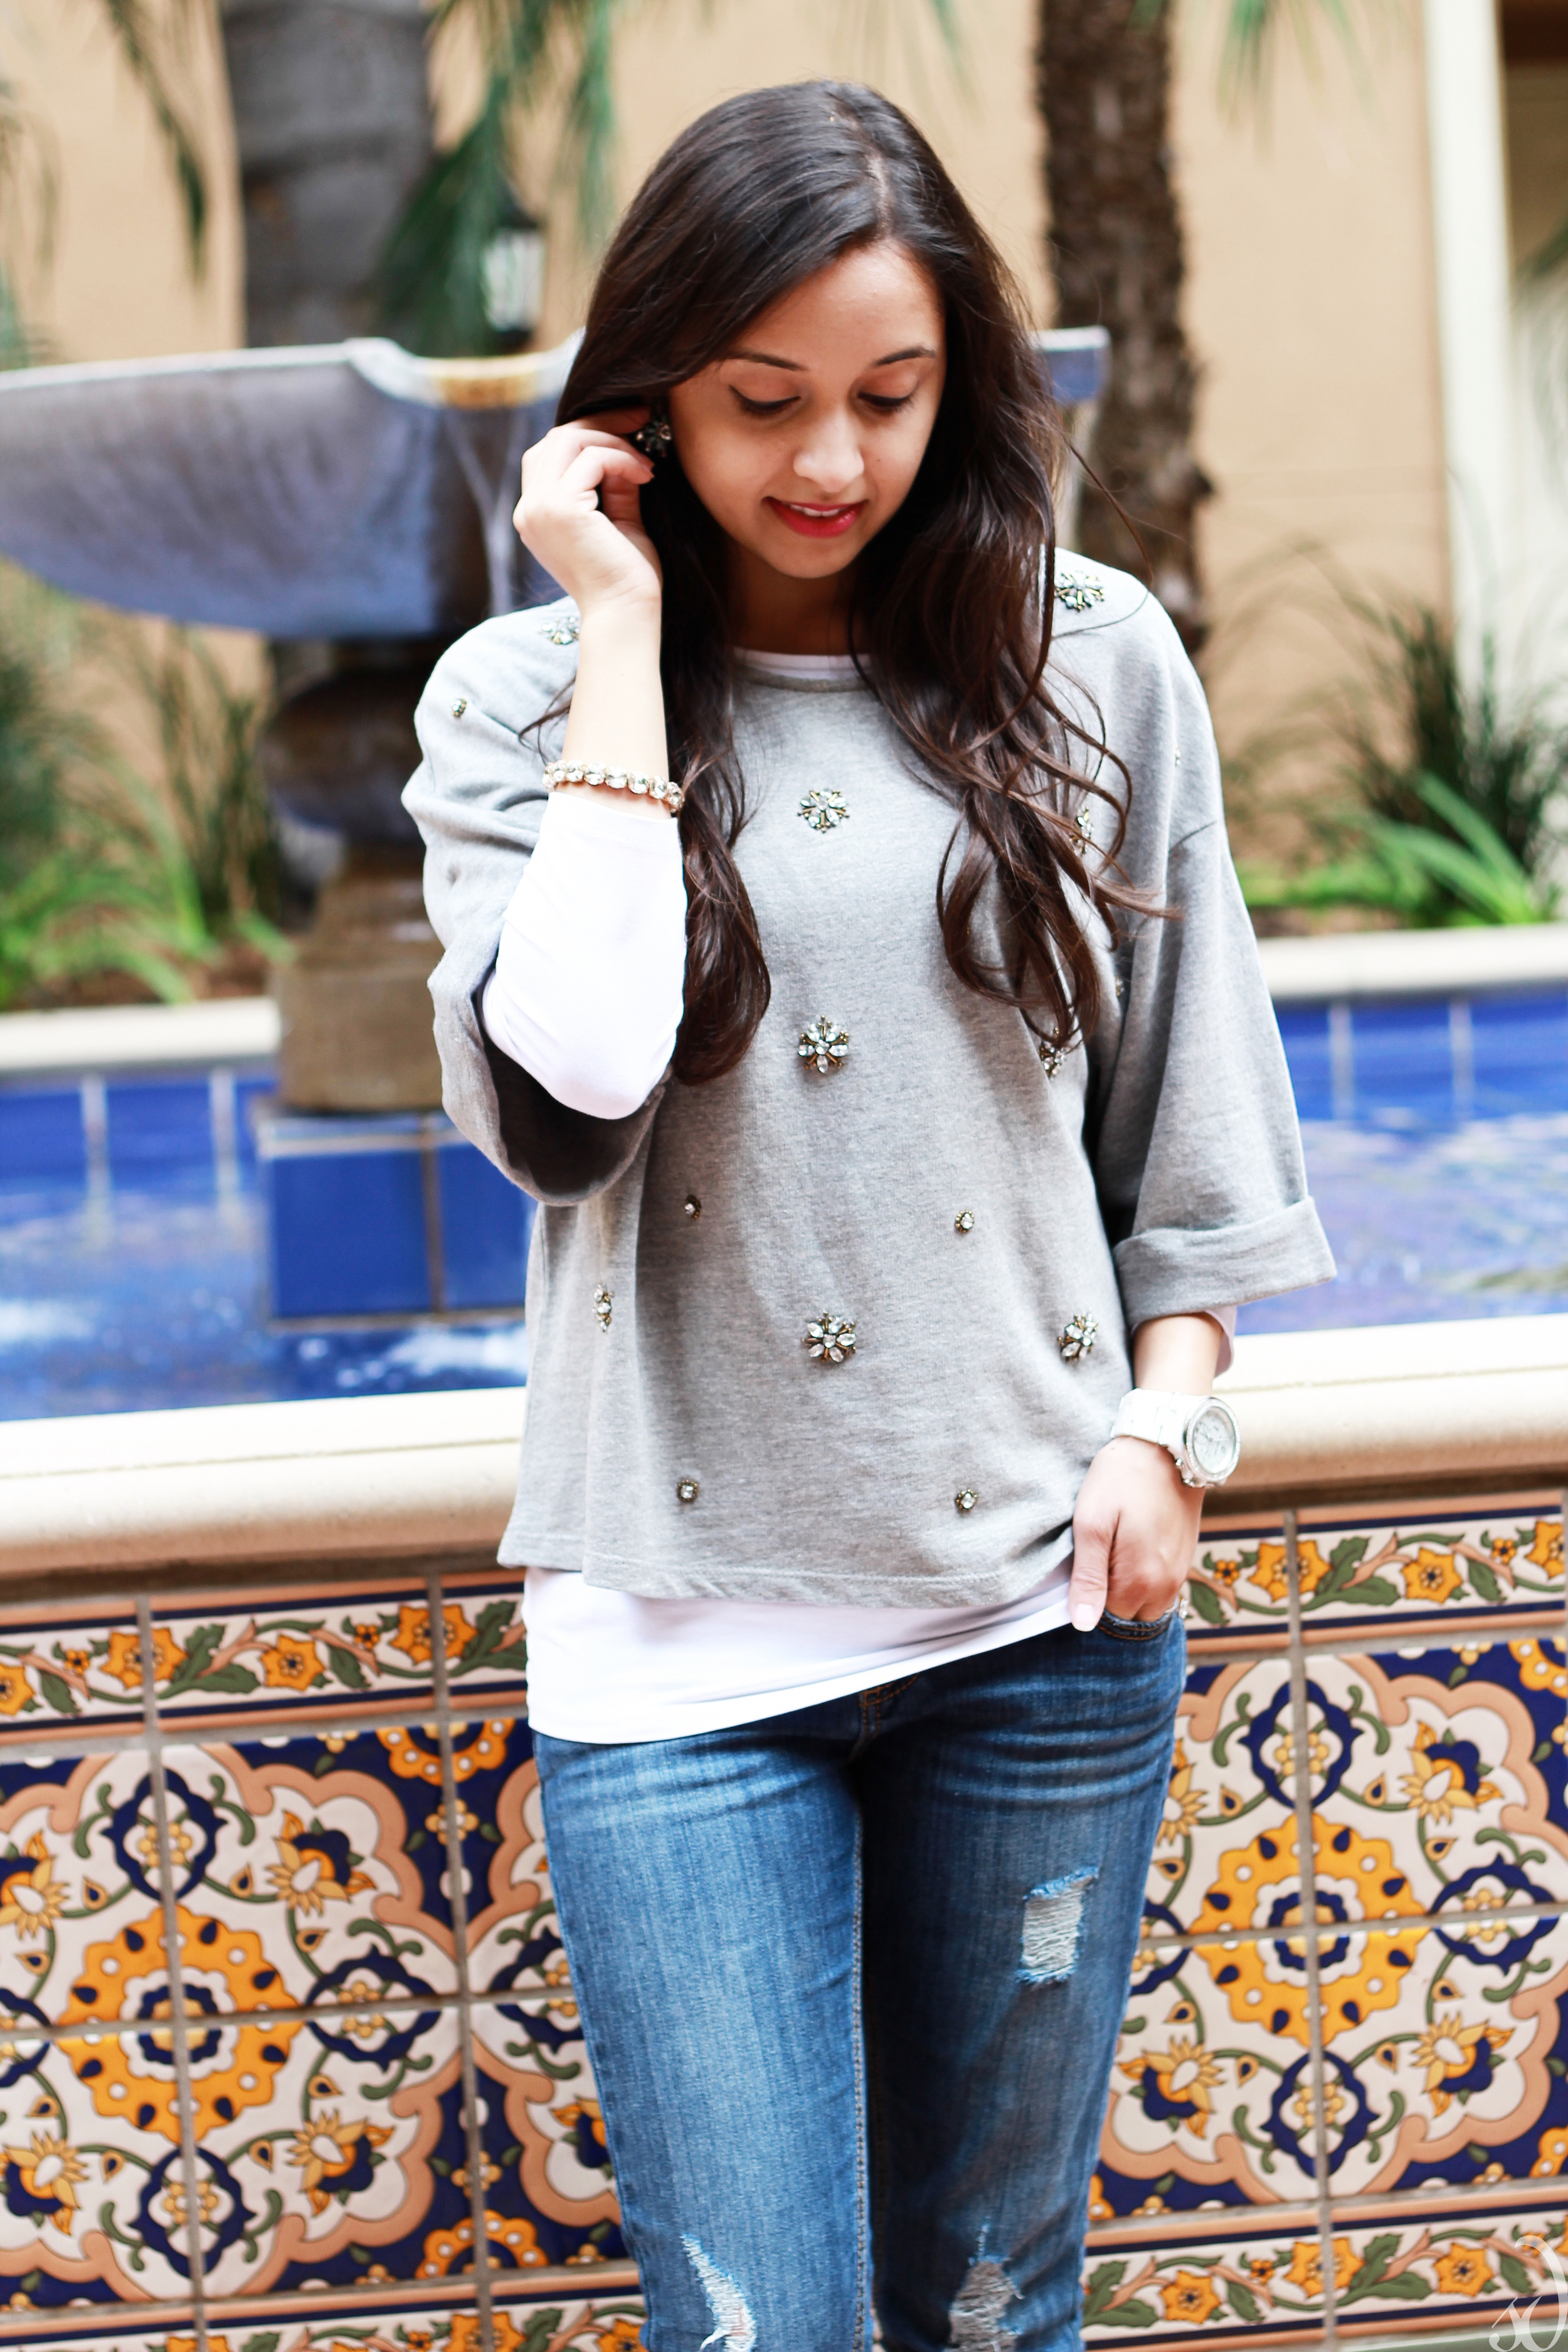 Sparkling Embellished Top with boyfriend jeans and heels